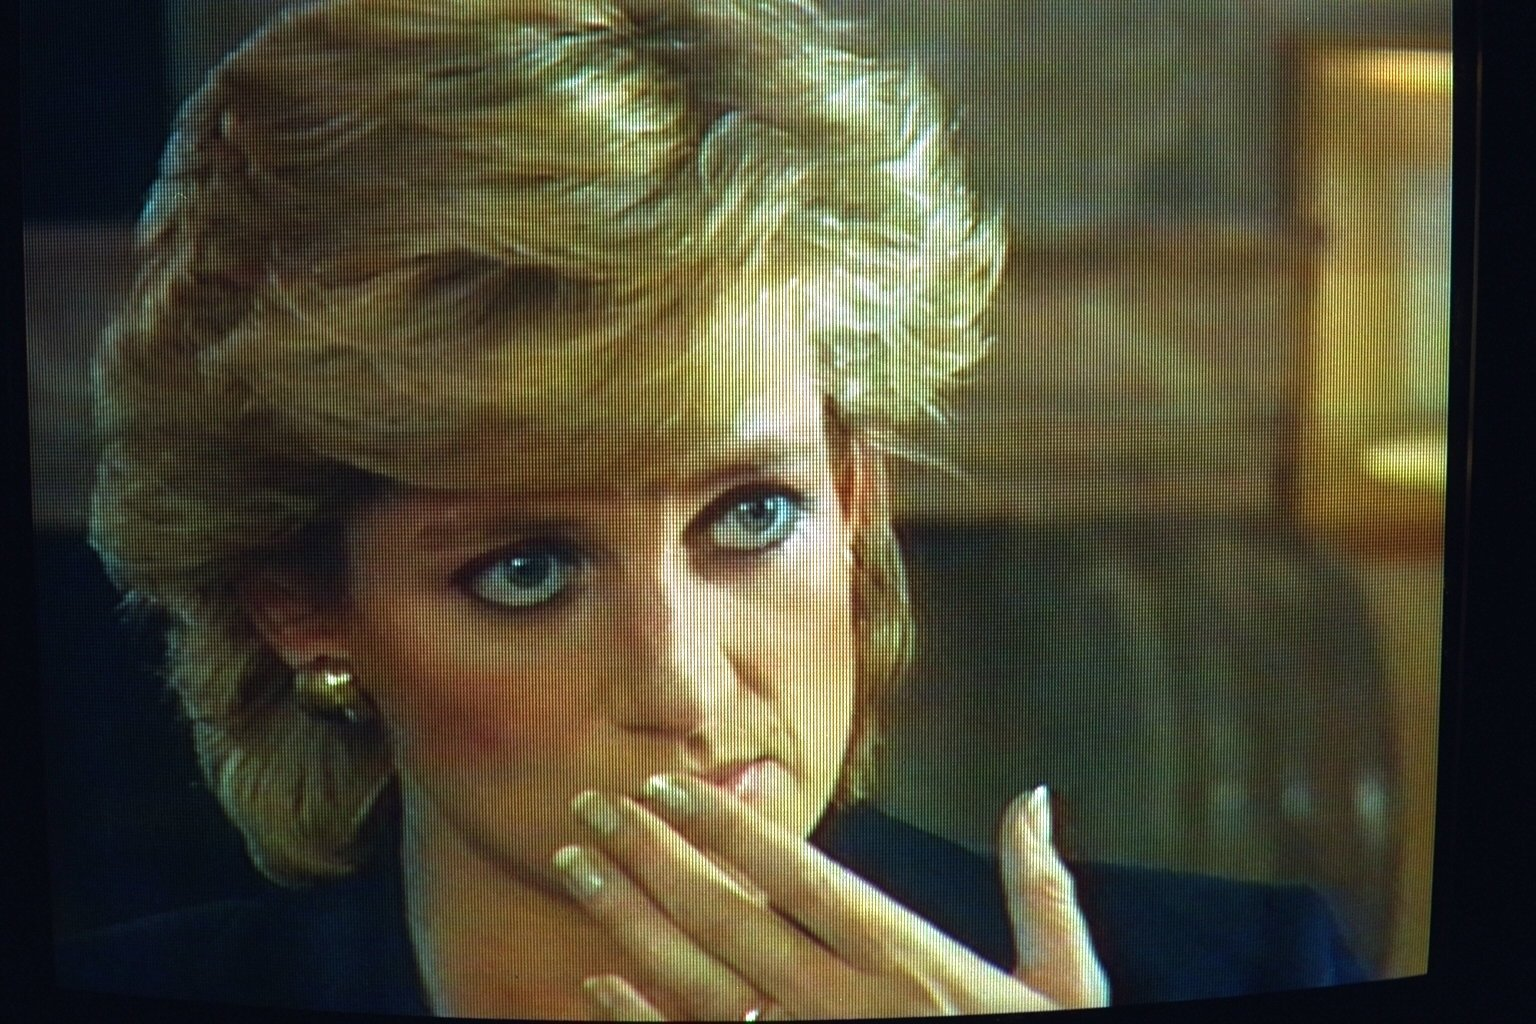 """Princess Diana during an interview with Martin Bashir for the TV program""""Panorama"""" on the BBC at theKensington Palace, London, U.K., Nov. 20, 1995. (Getty Images)"""